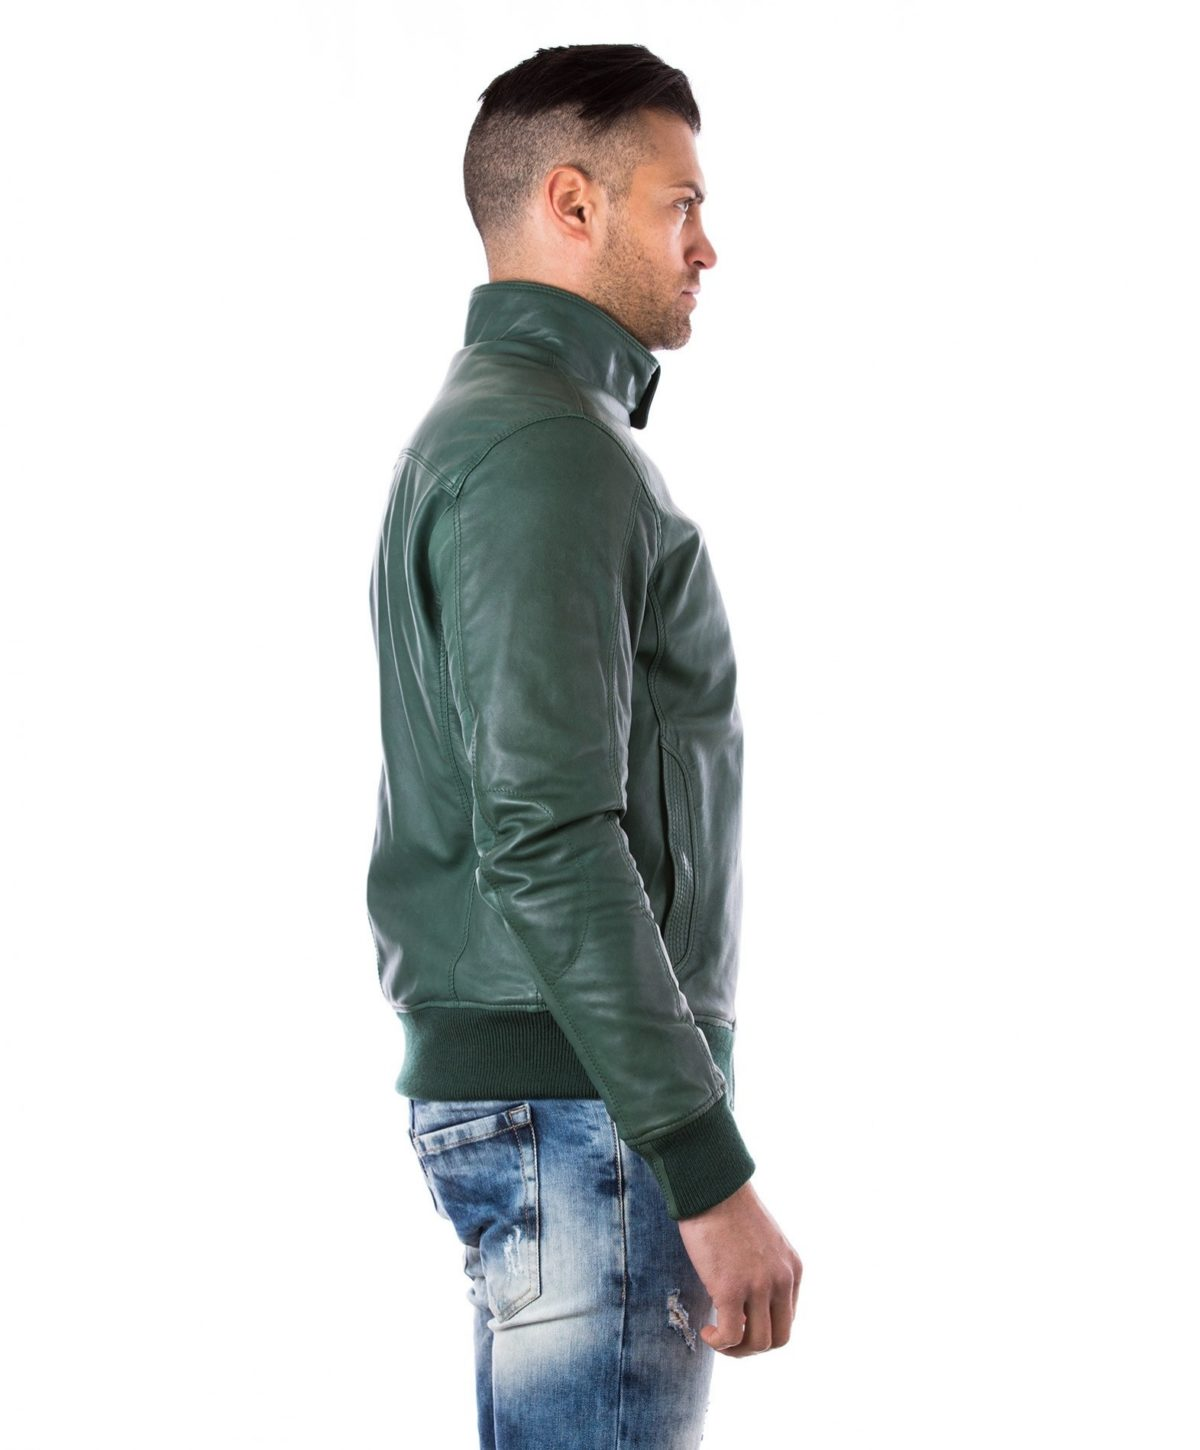 men-s-leather-jacket-genuine-soft-leather-style-bomber-bicolor-wool-cuffs-and-bottom-one-zip-pocket-green-color-thil (3)